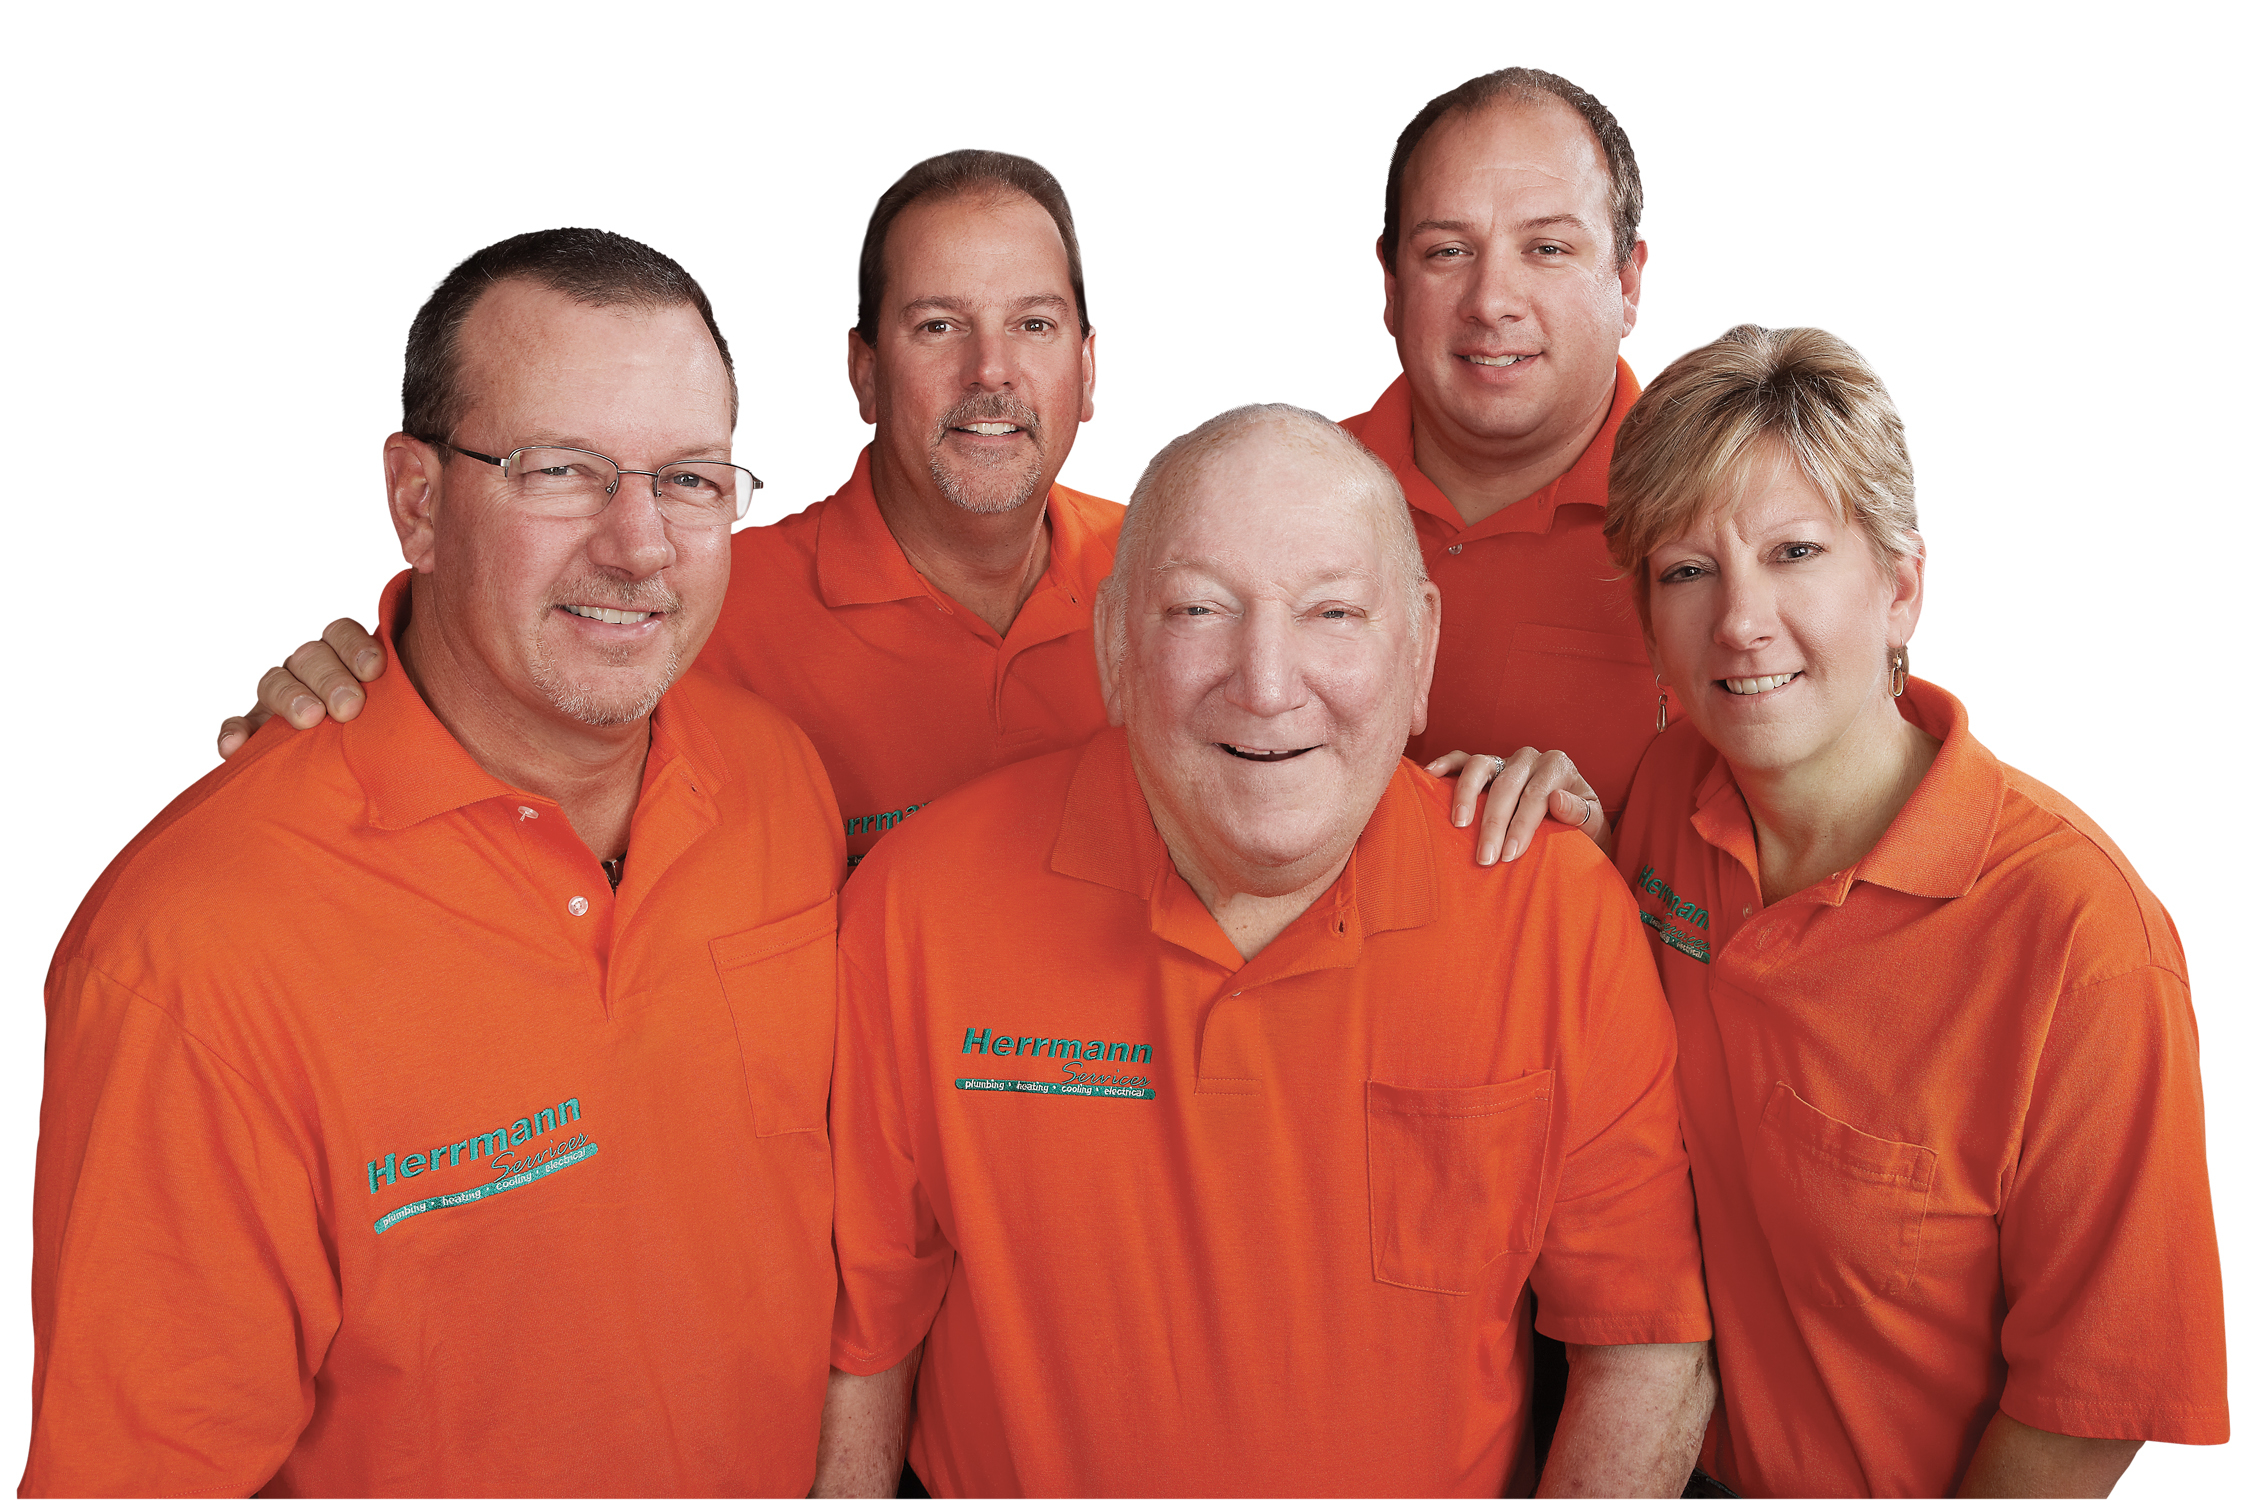 Herrmann Services is a family owned and operated heating, cooling, plumbing, and electrical business serving the Greater Cincinnati and surrounding areas since 1968. Our company includes three generations of the Herrmann family